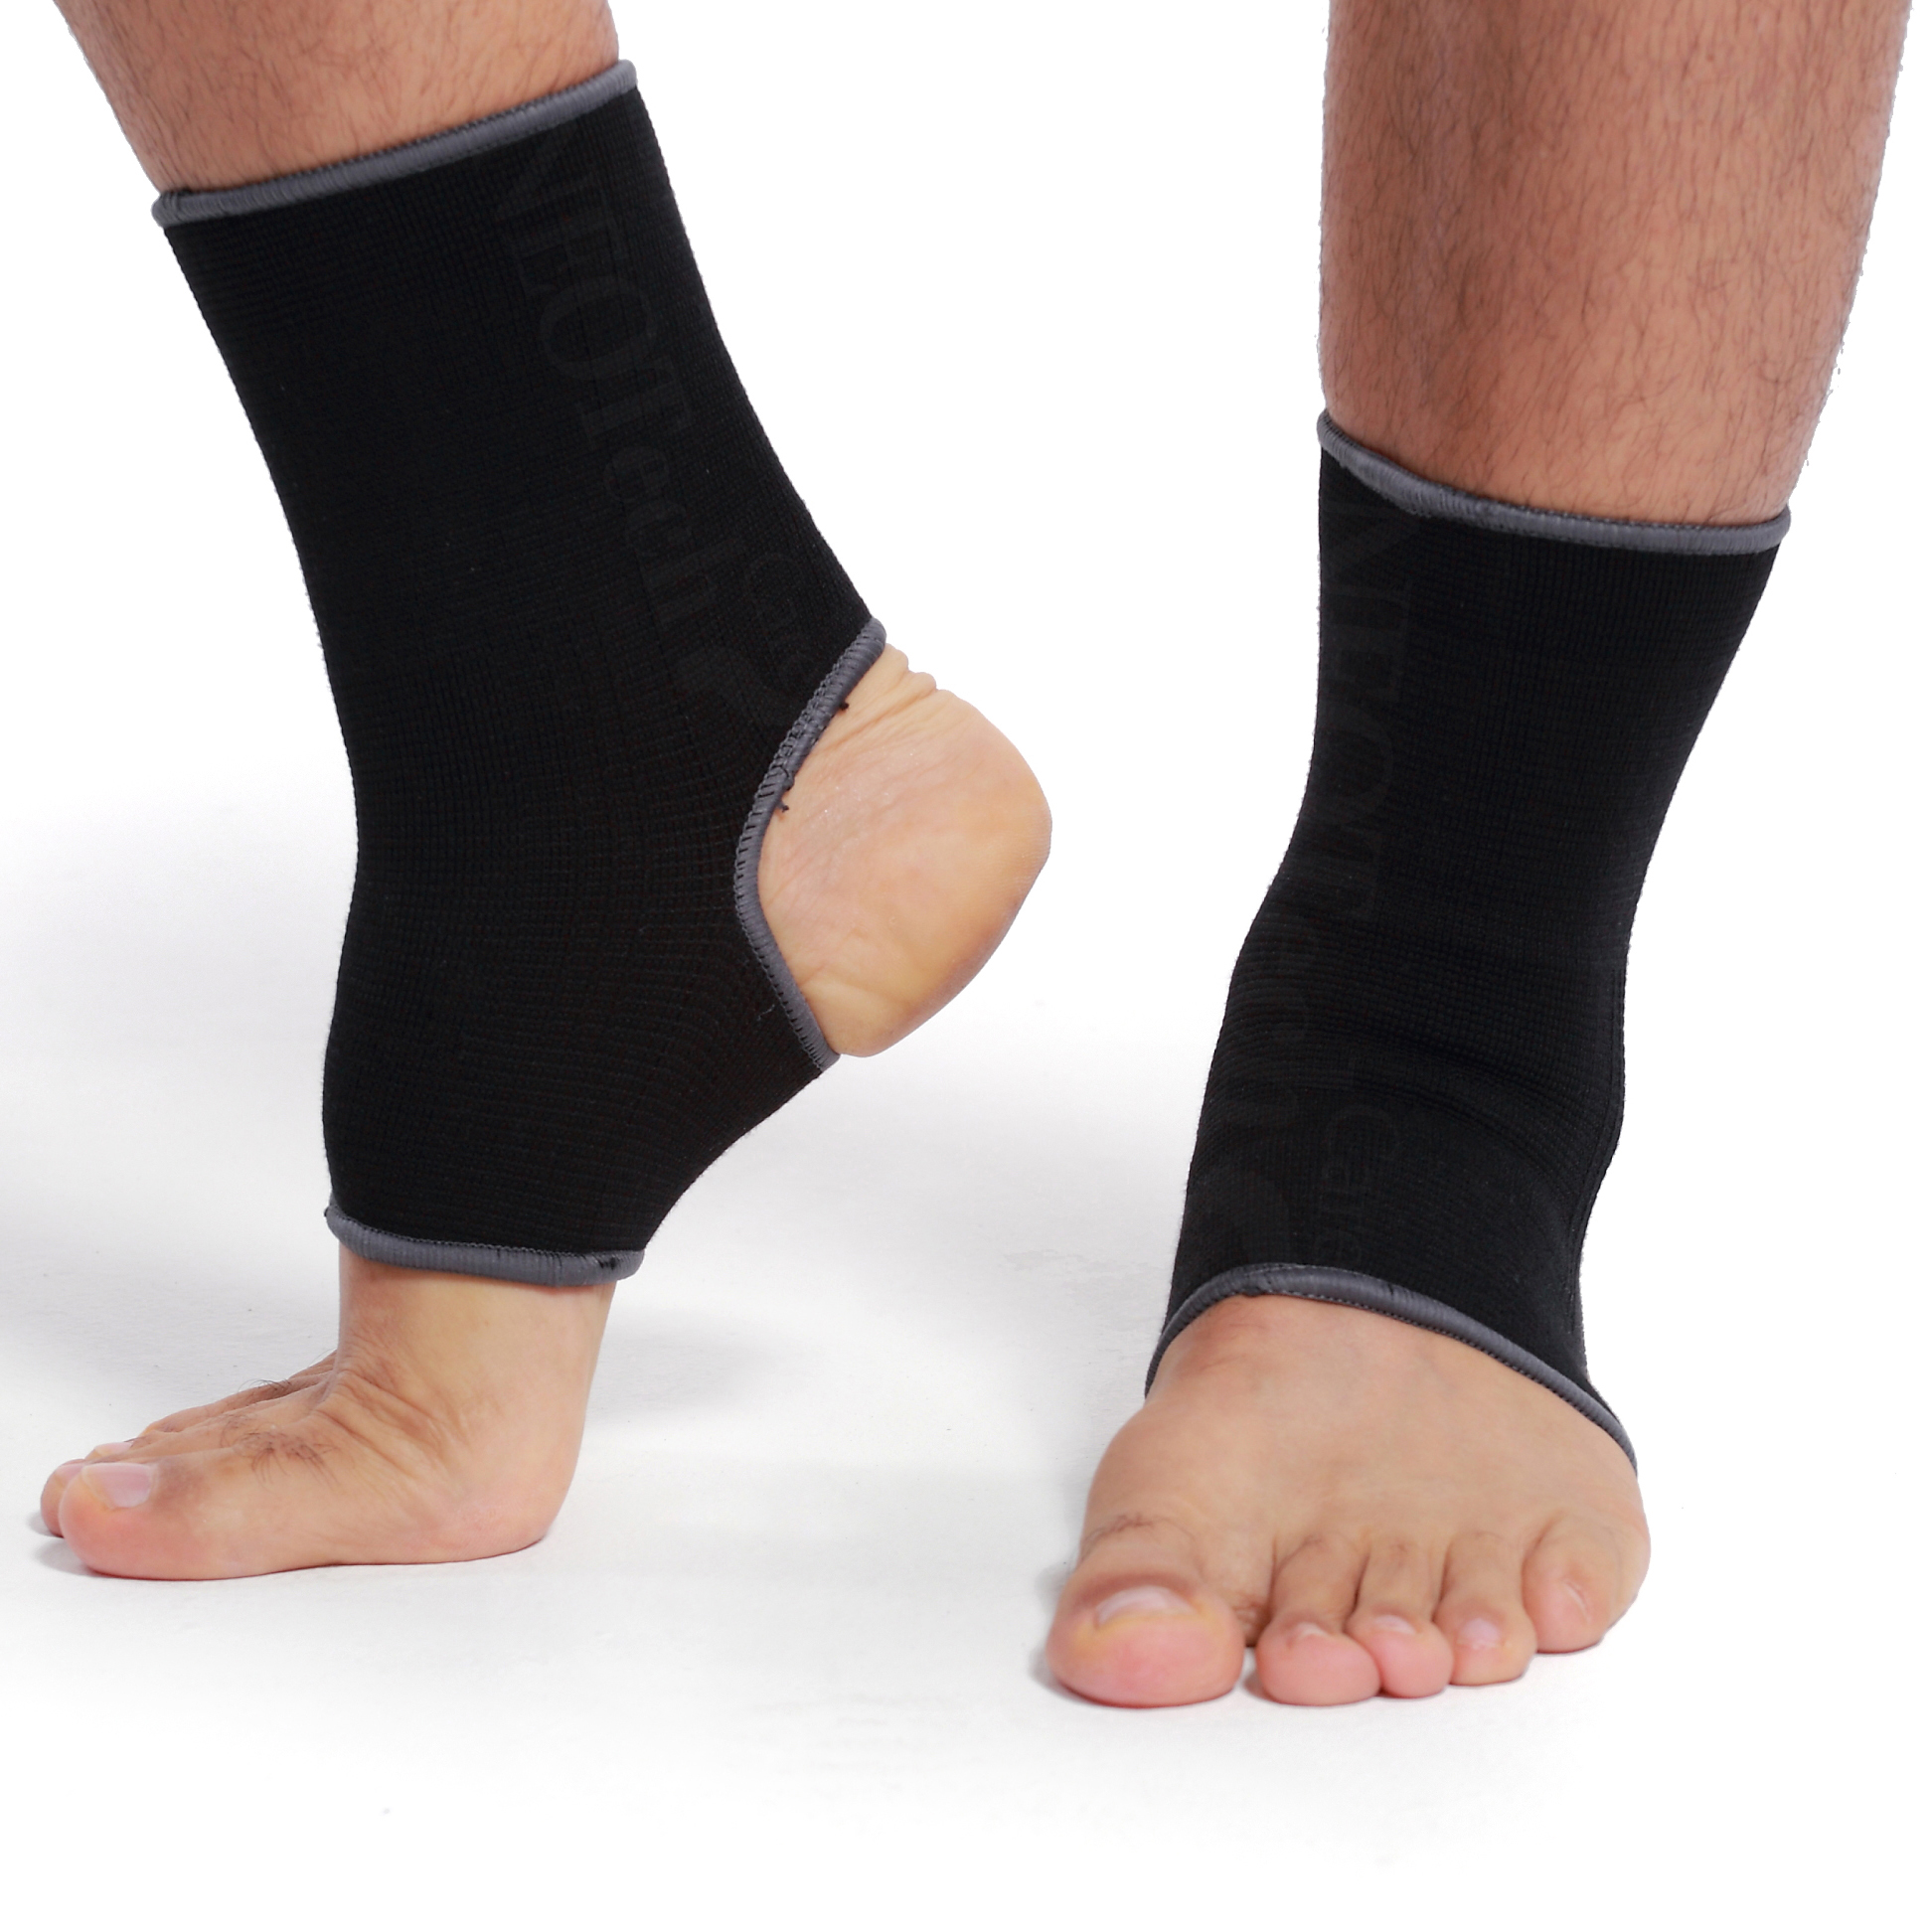 Stretching and Strengthening Ankle Exercises for Ankle Sprain